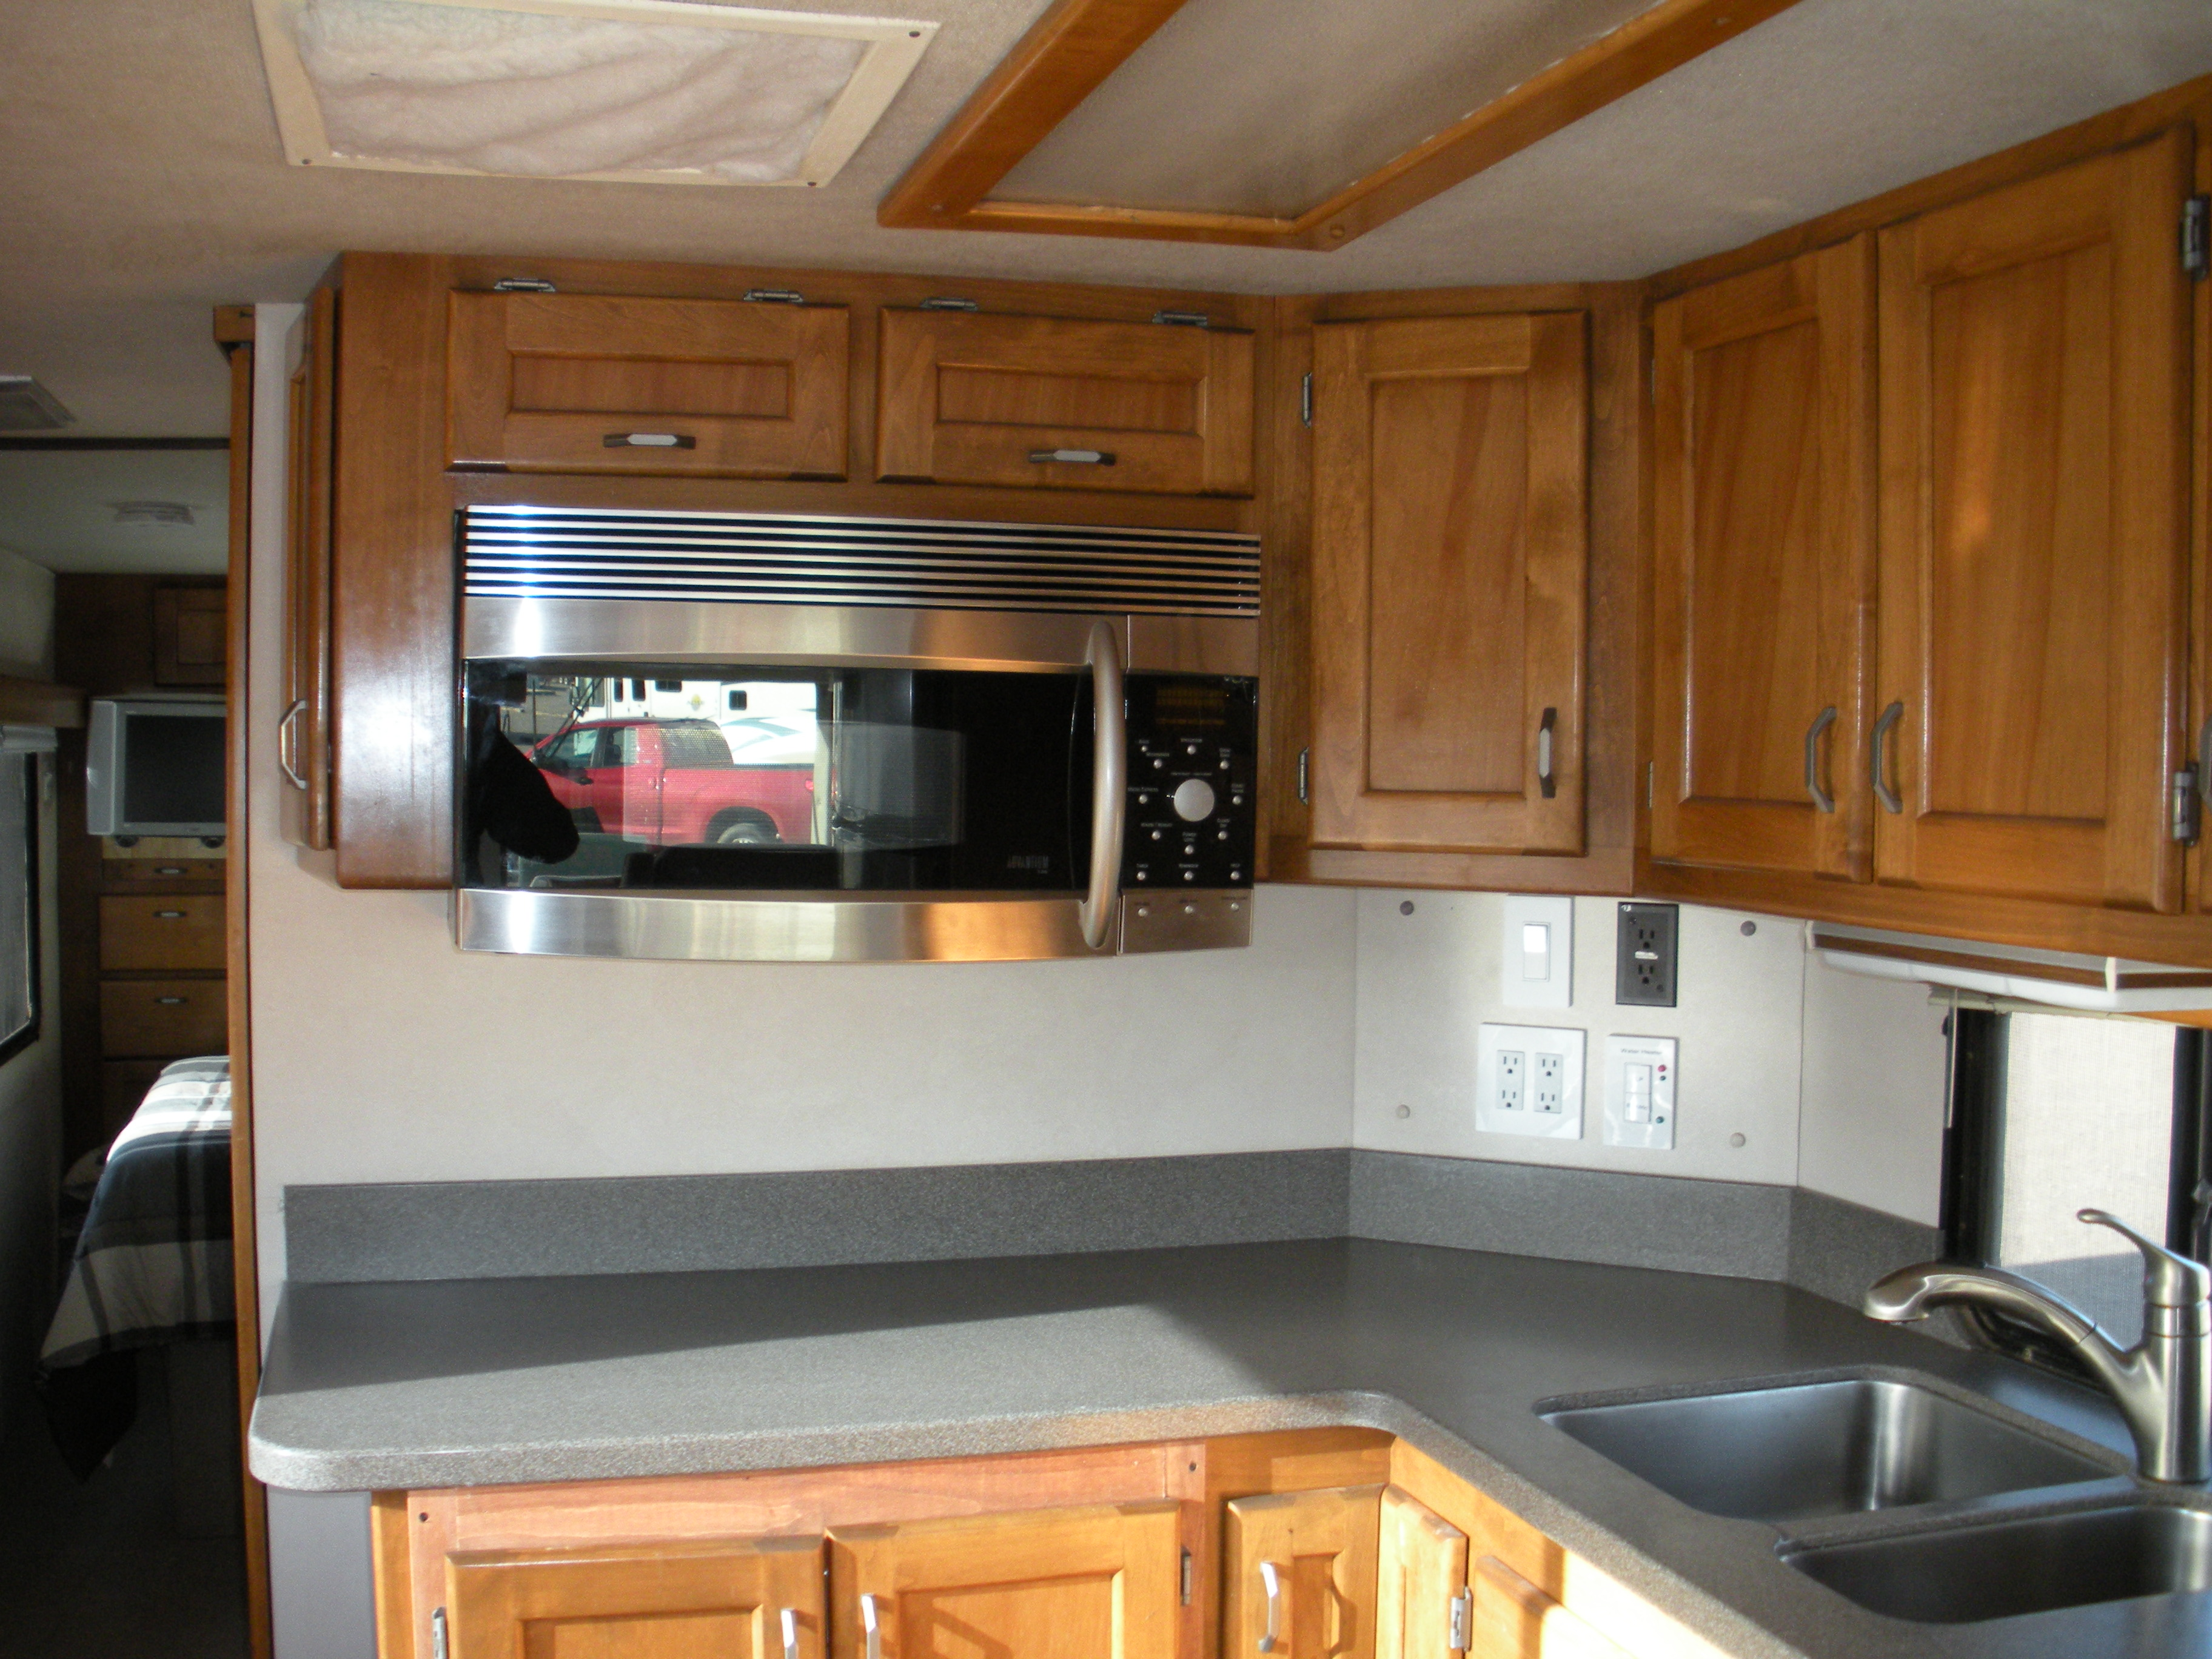 the grey ghosts new kitchen part 2 starting to build cabinets rv kitchen cabinets My old Safari s kitchen cabinets at 21 years old put together with pocket screws